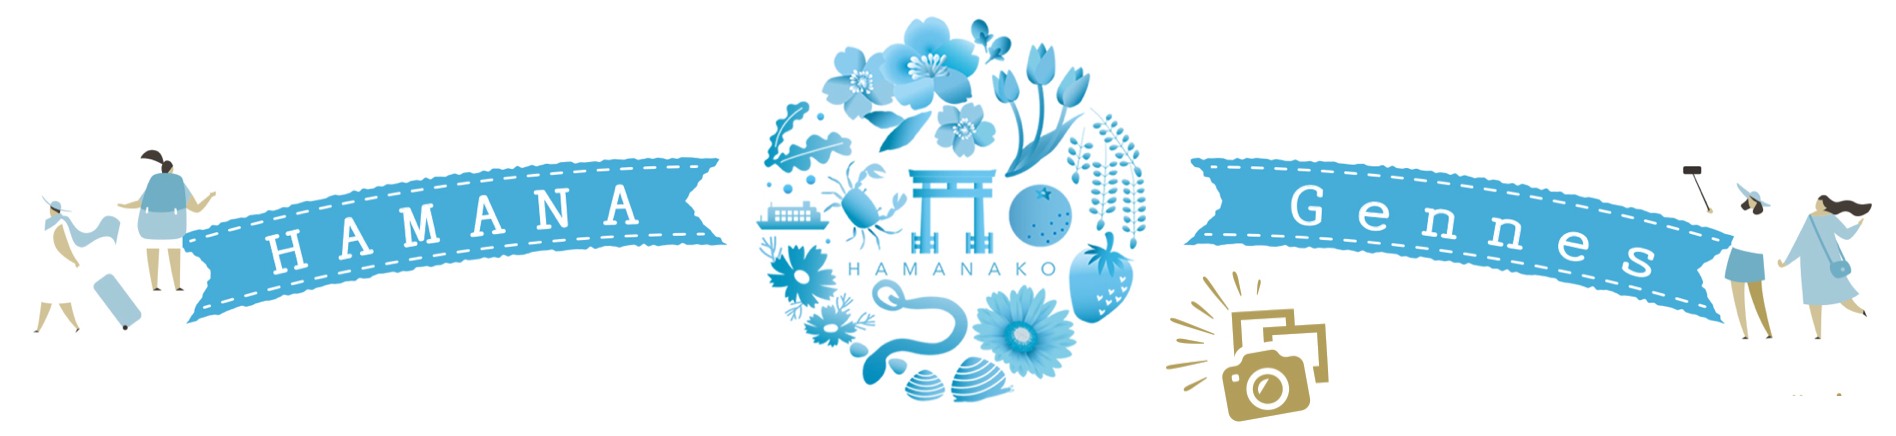 The Hamana Gennes logo, featuring a banner with the group name, and illustrations of several women sightseeing, with a central circular icon made up of local Hamamatsu plants, flowers, fruits, and animals.